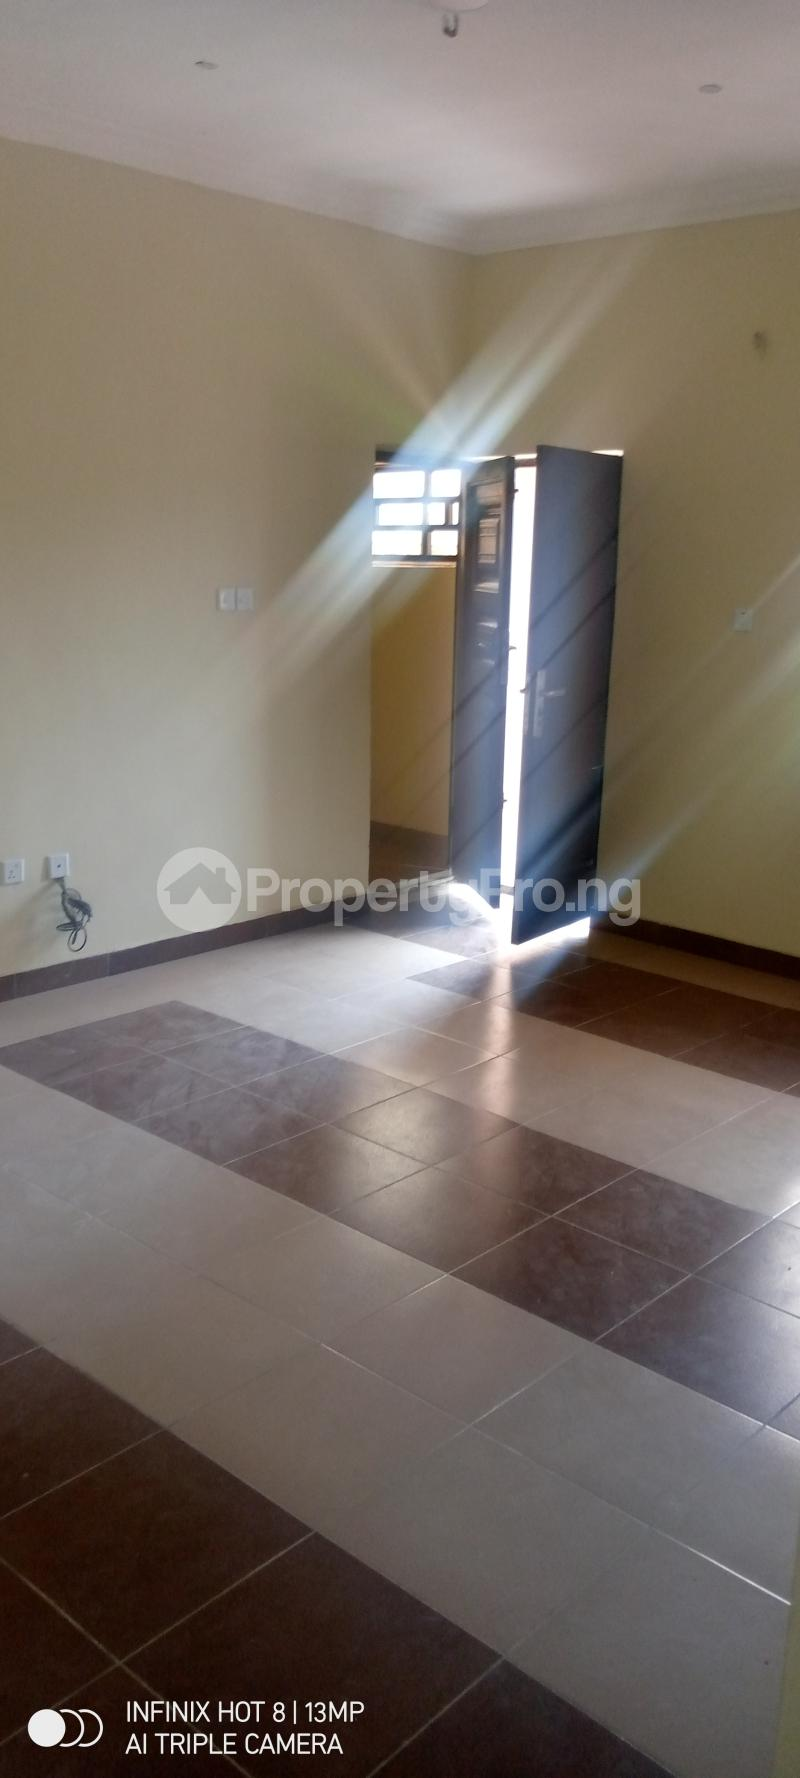 2 bedroom Flat / Apartment for rent Green field estate  Amuwo Odofin Lagos - 5